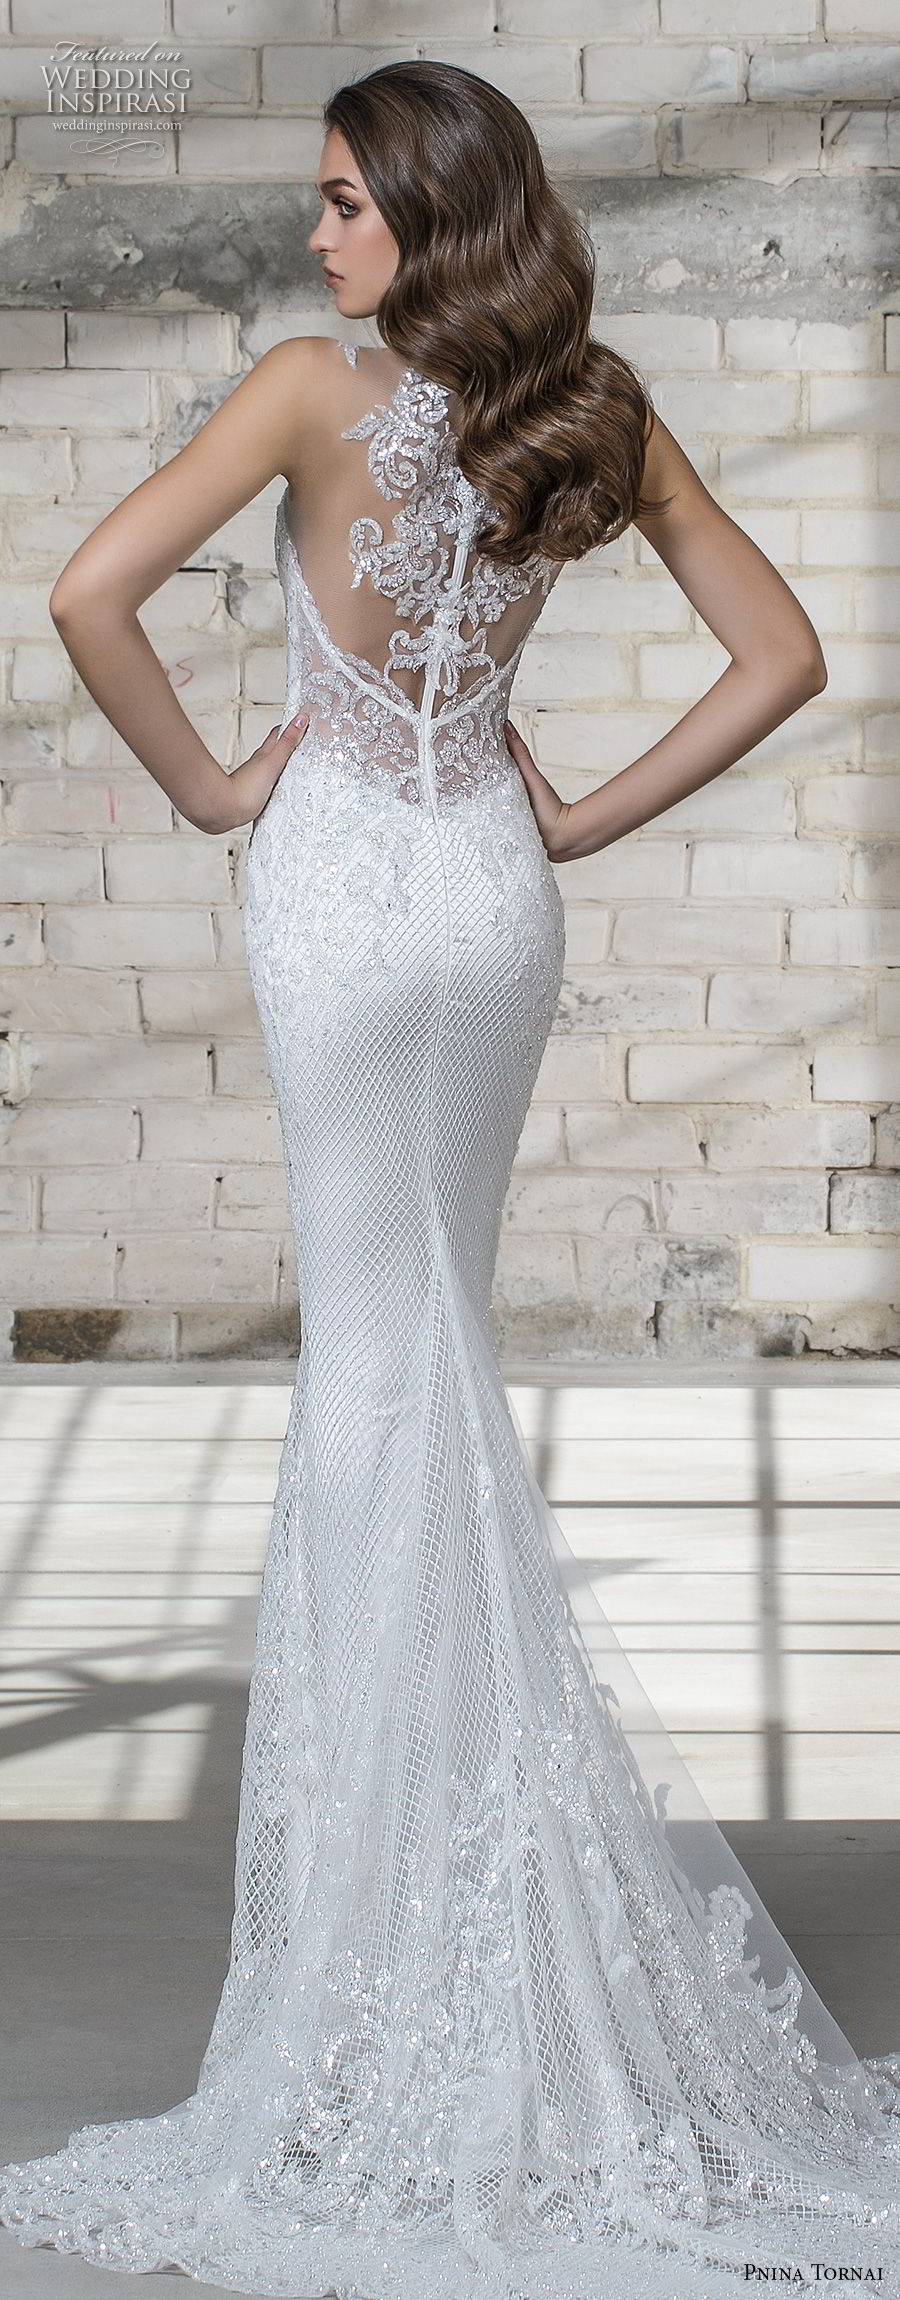 pnina tornai 2019 love bridal embellished strap deep plunging sweetheart neckline full embellishment elegant fit and flare wedding dress chapel train (17) bv